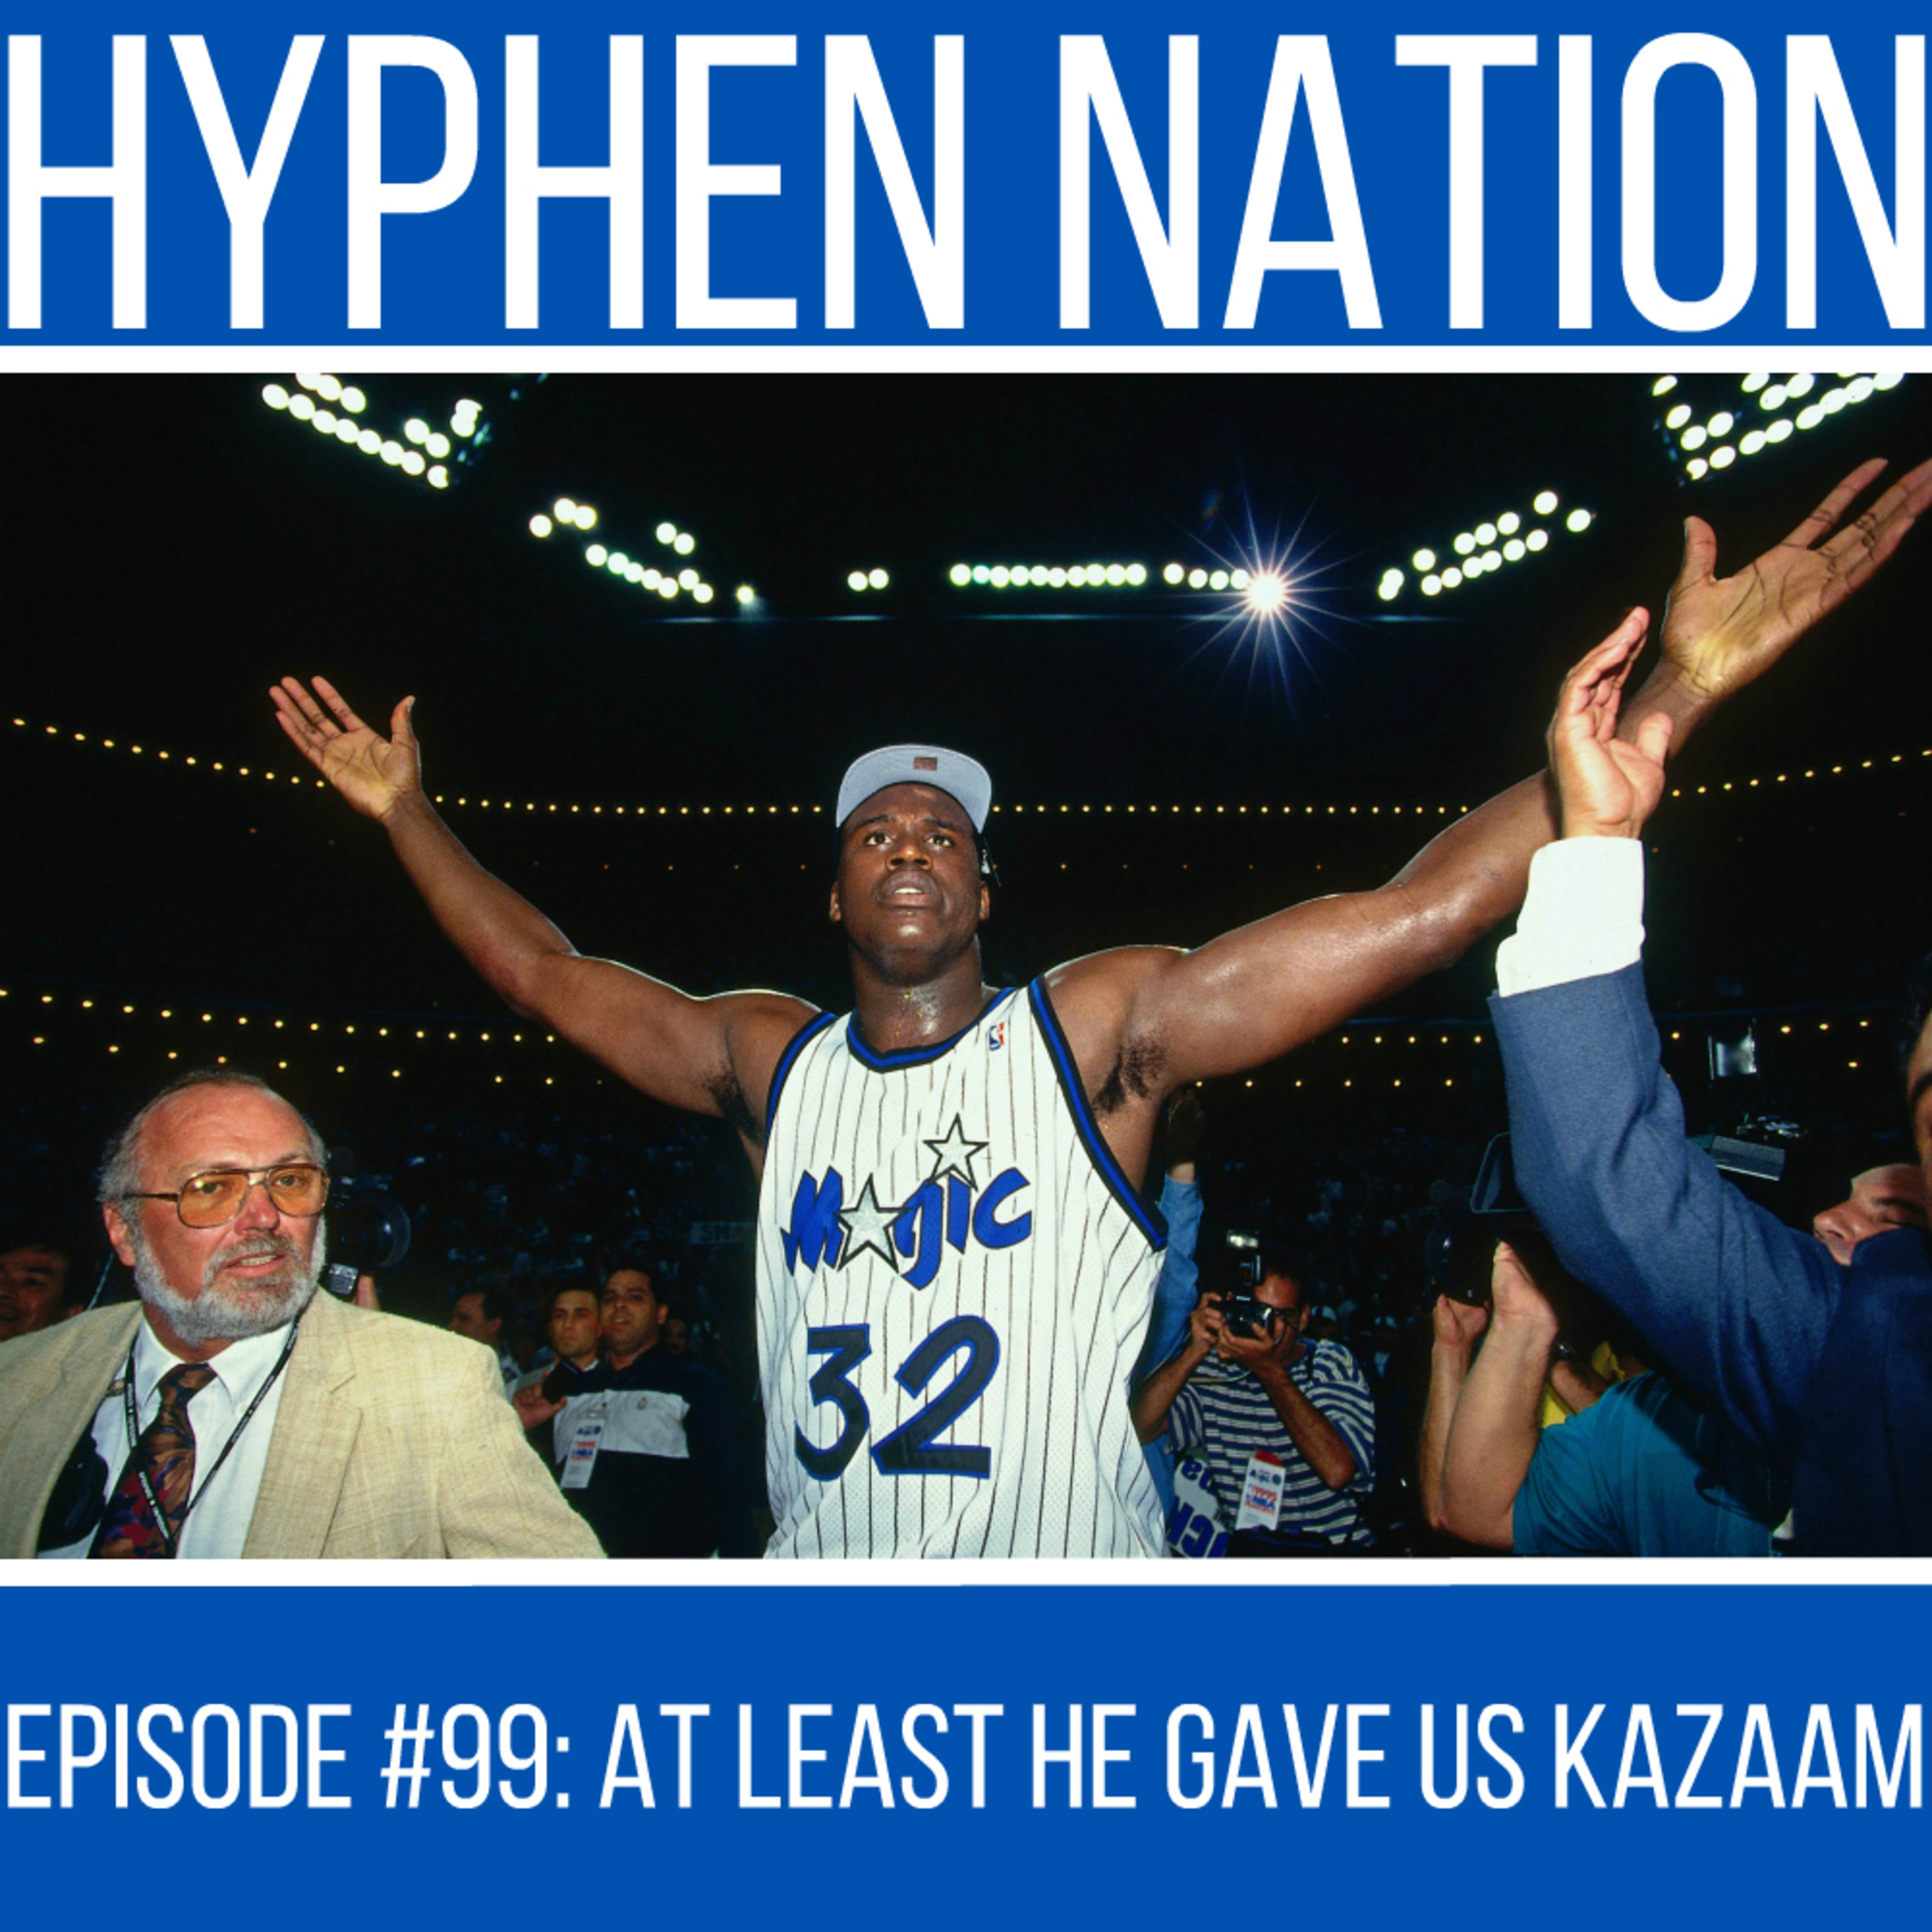 Episode #99: At Least He Gave Us Kazaam